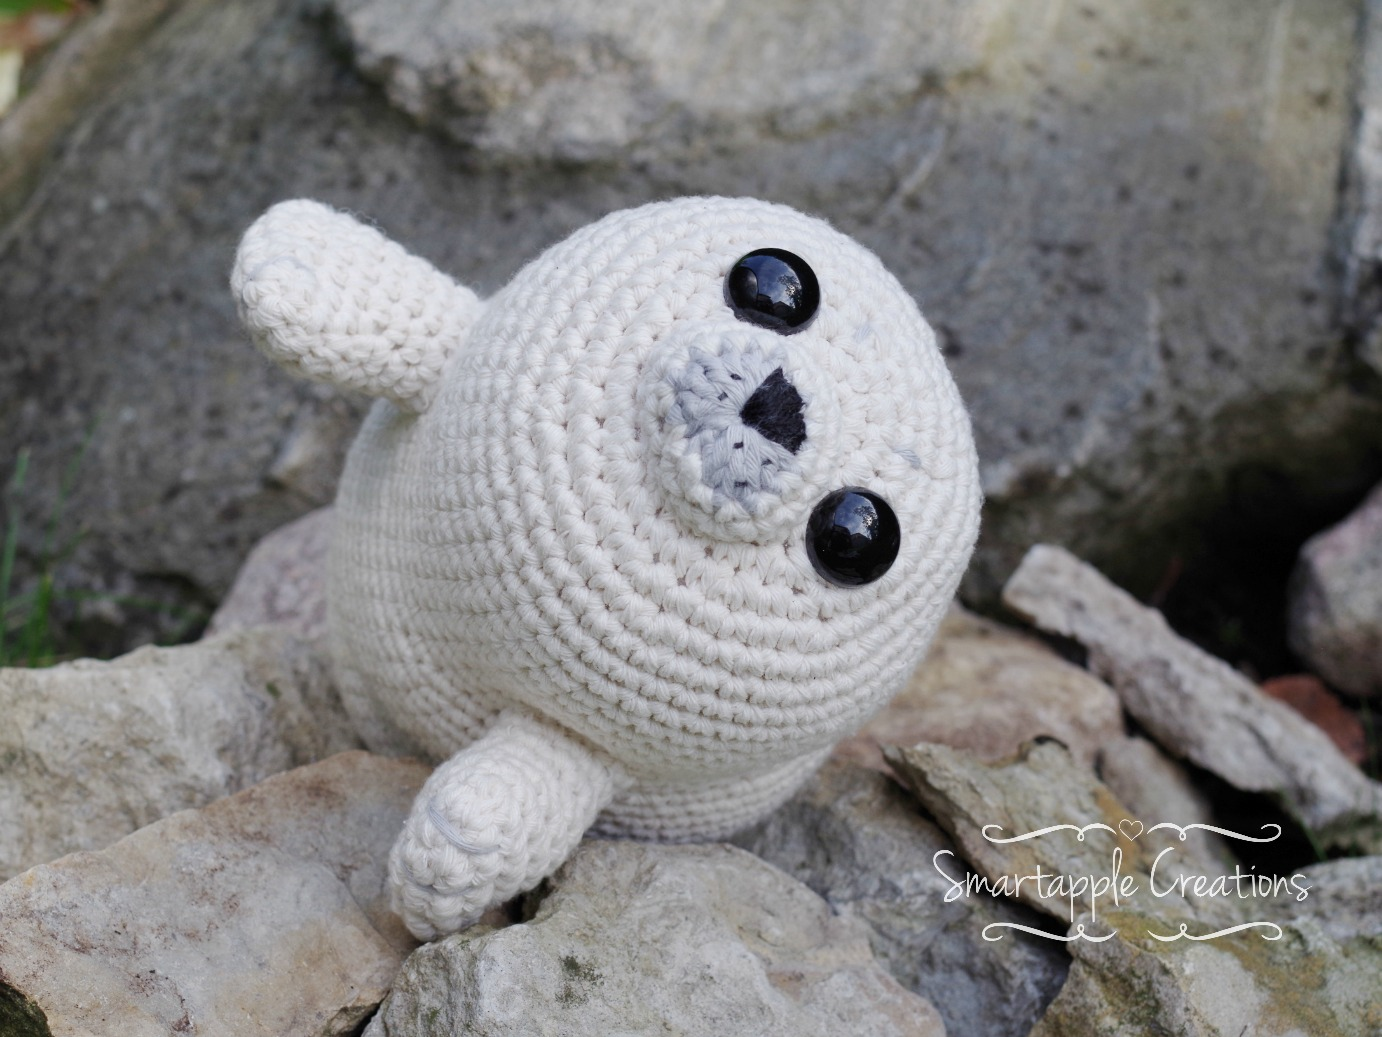 Stitch Amigurumi Crochet Pattern : Smartapple Creations - amigurumi and crochet: New pattern ...